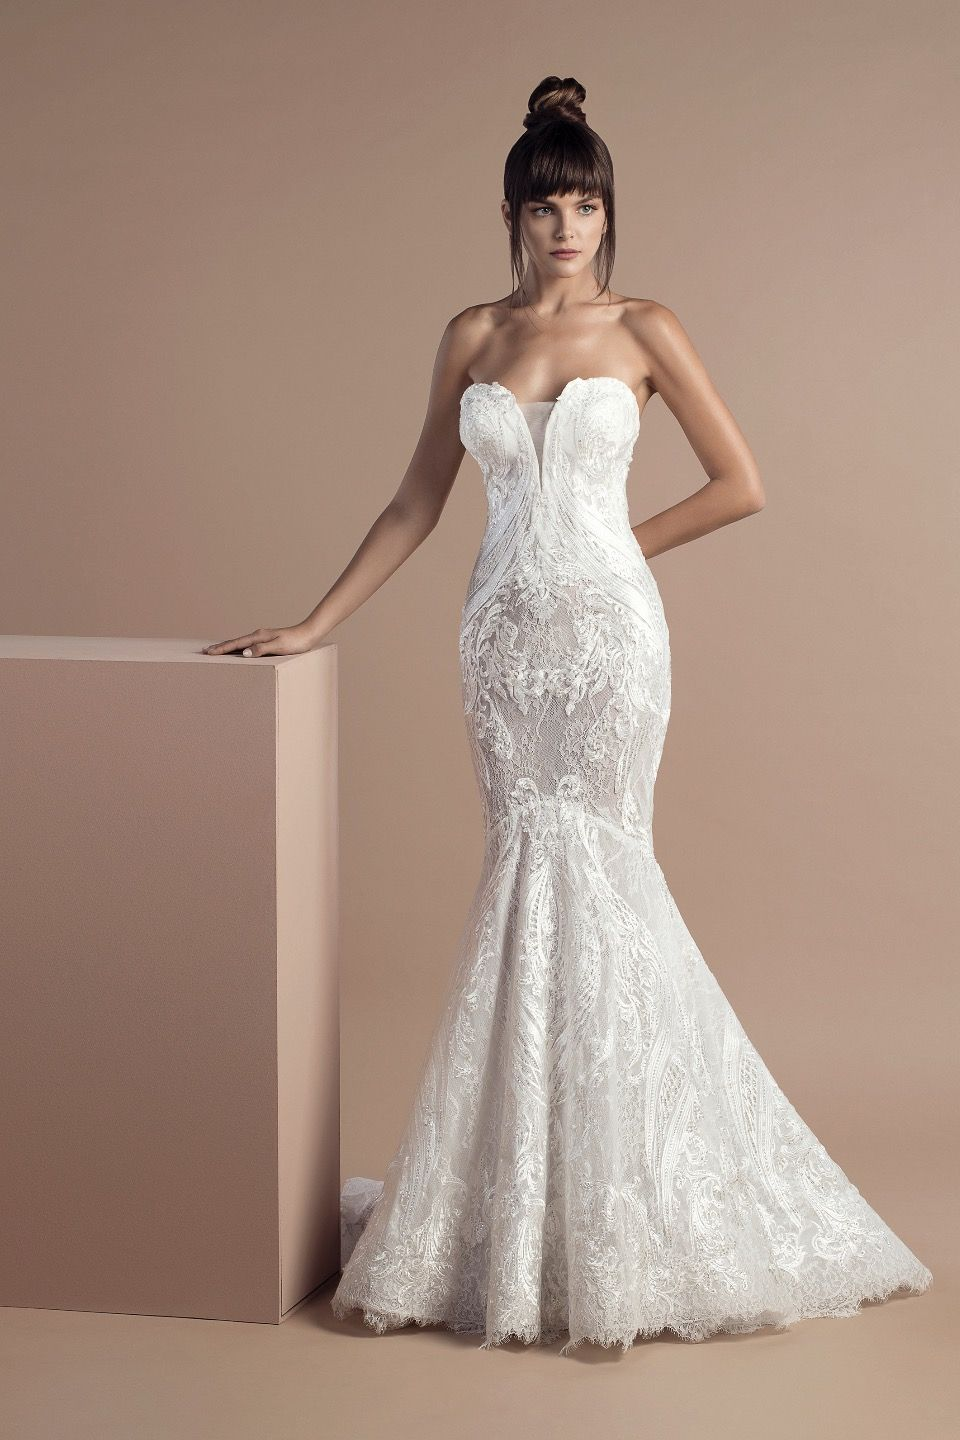 7dcc851704dc Off white mermaid dress in lace and tulle embroidered with silk thread,  with a strapless sweetheart bodice and a Court train.